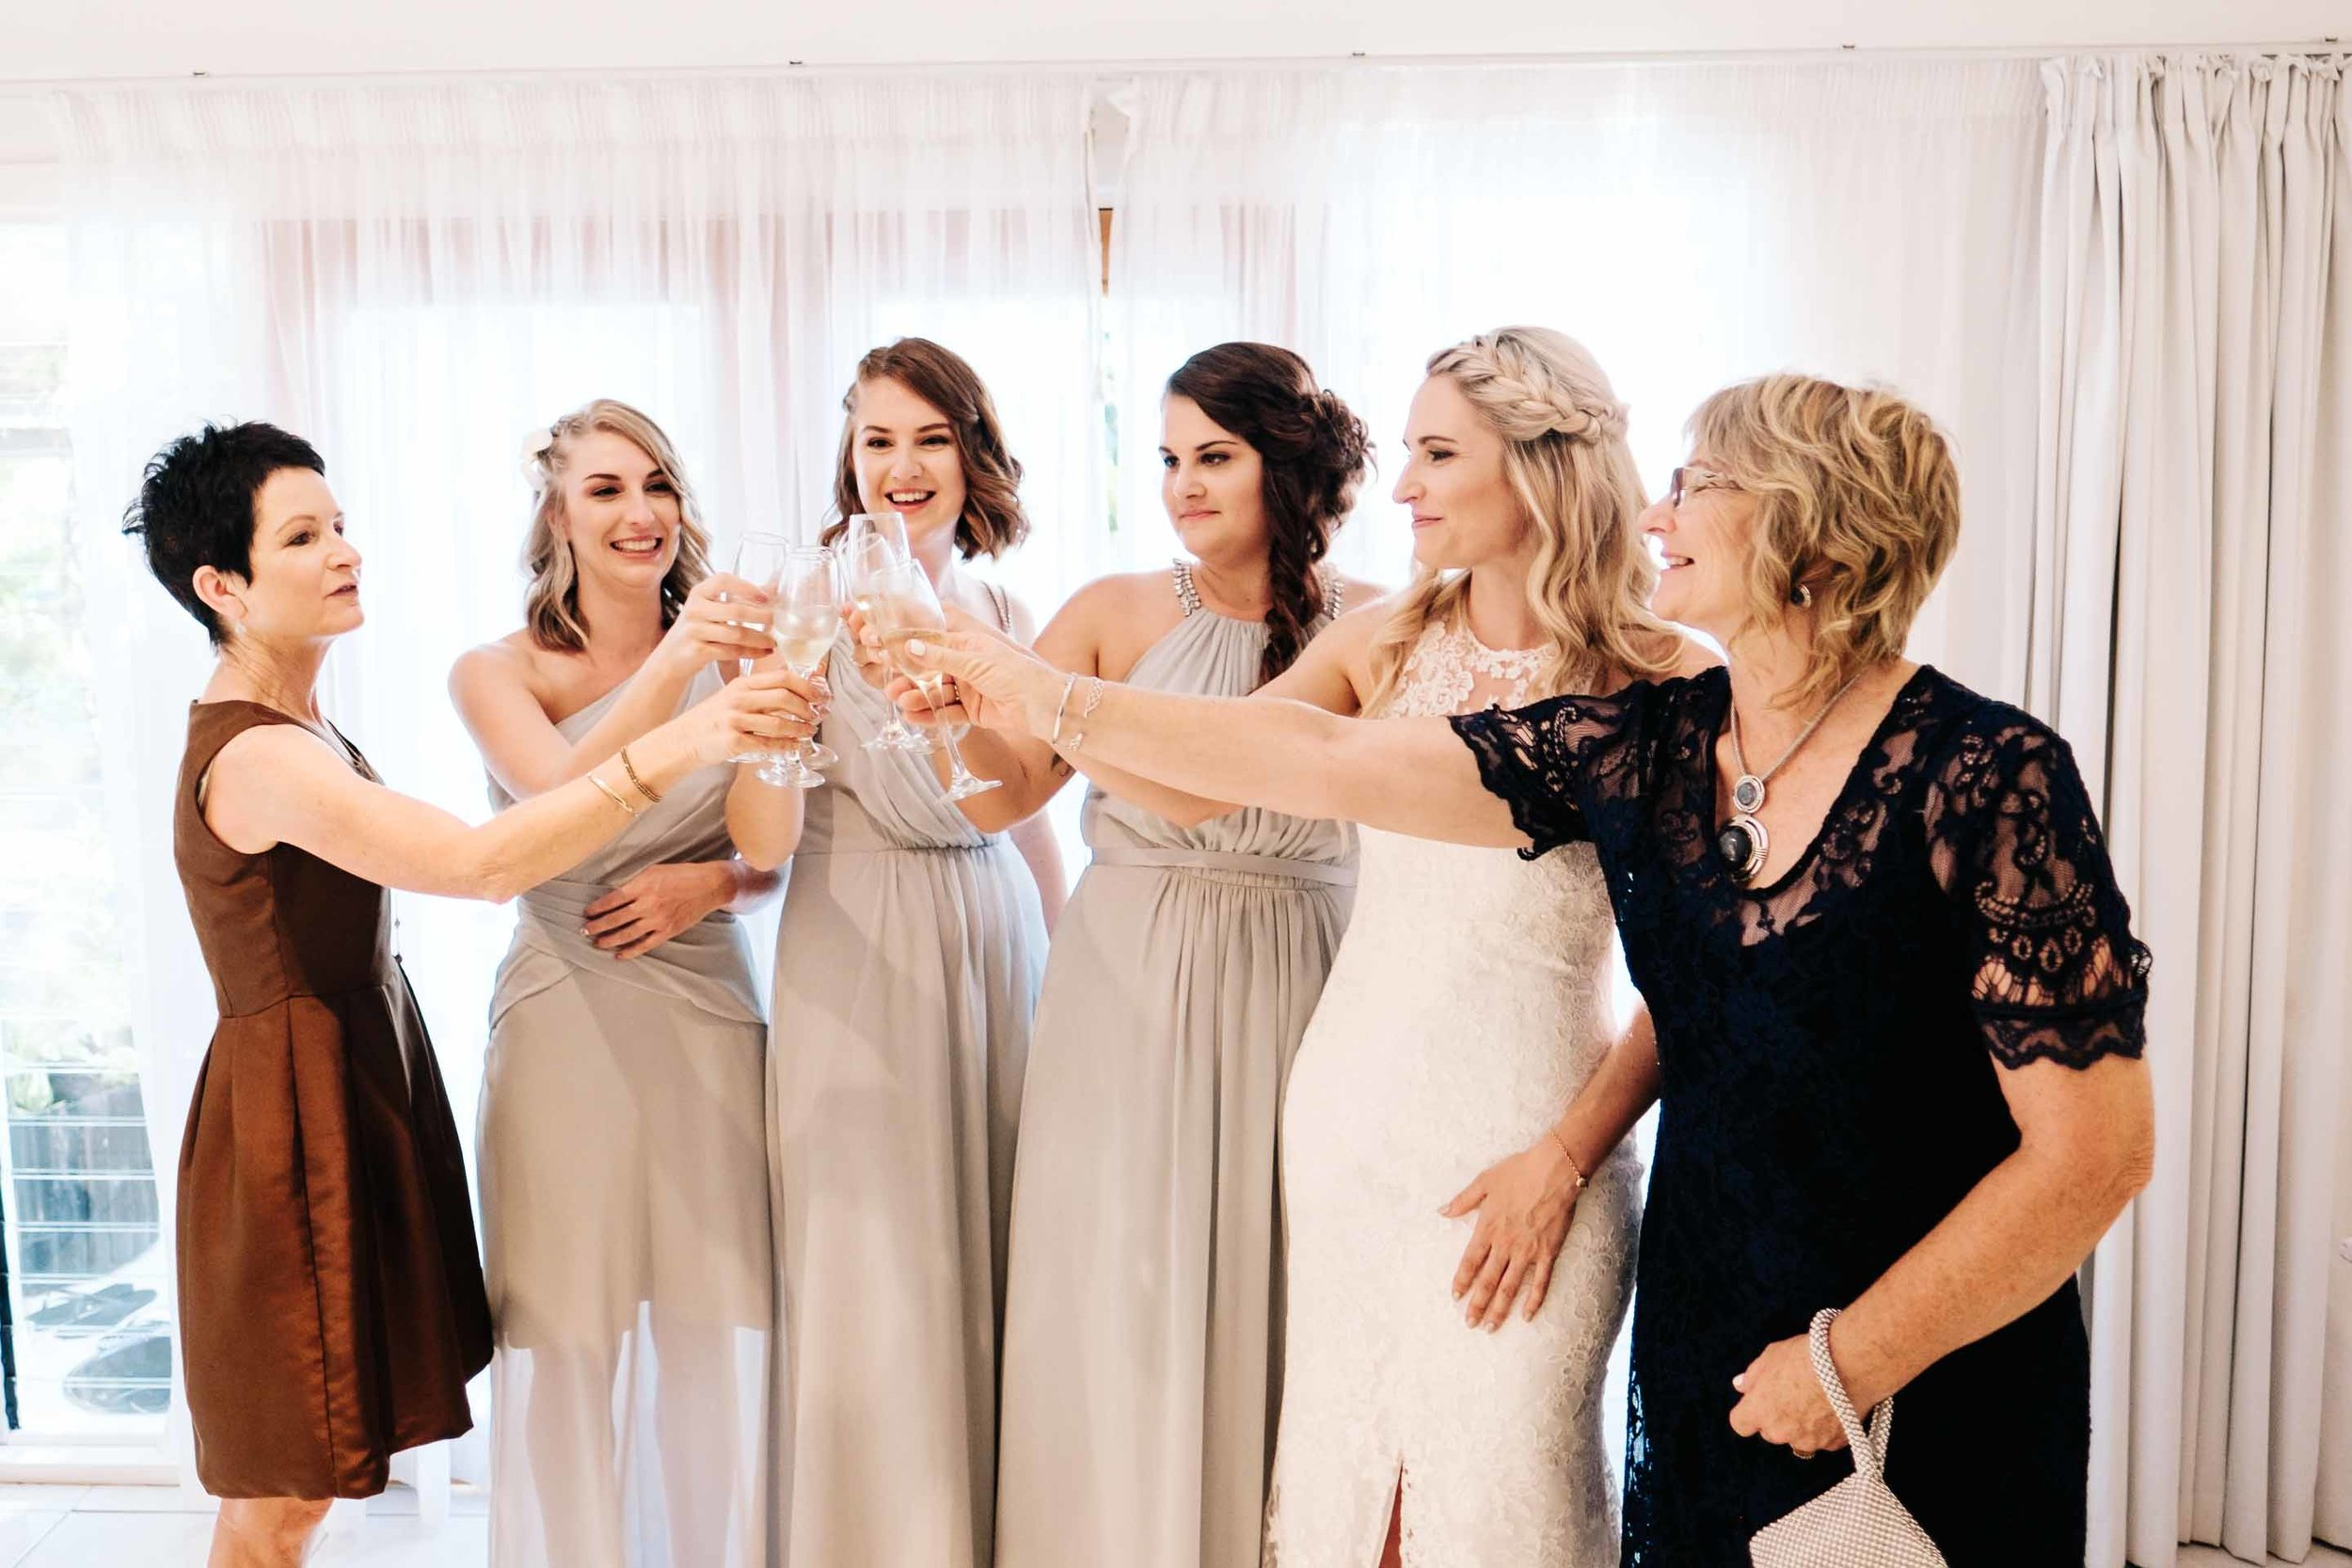 the bride and bridesmaids with the brides mother and aunt having a celebratory glass of champagne before the ceremony